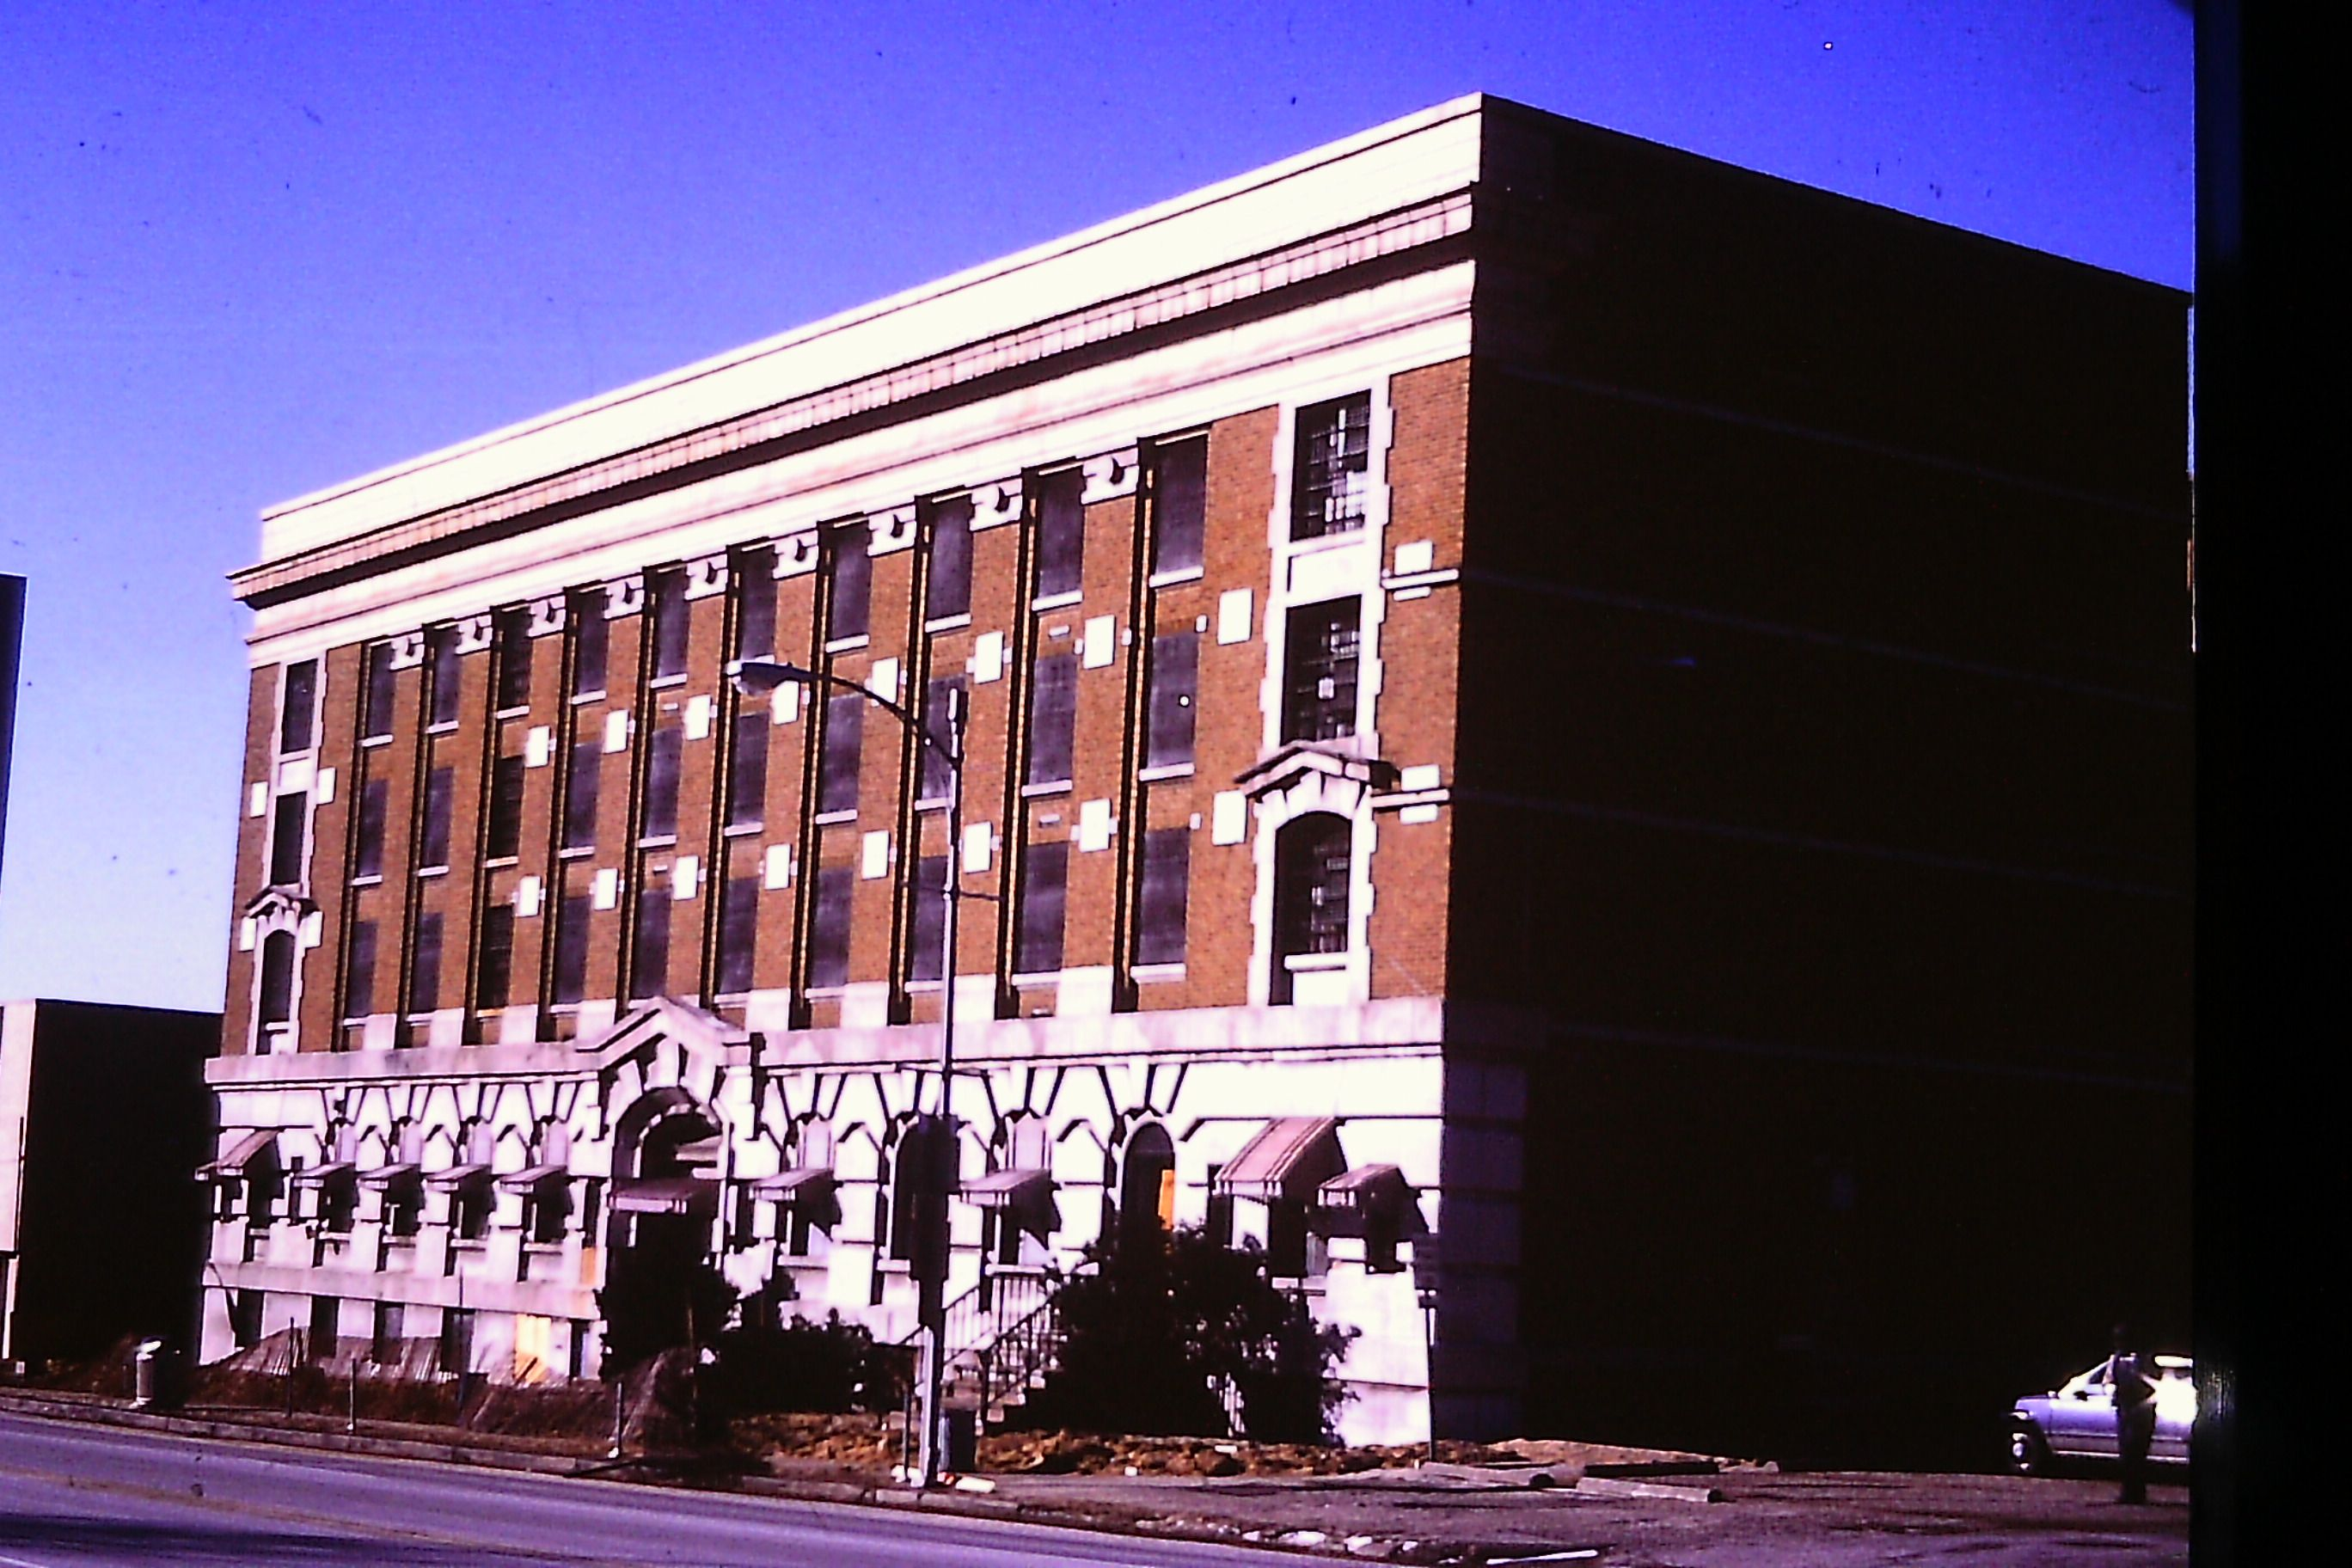 The Old Peoria County Jail Or The Hamilton Hotel Peoria County Jail Old Pictures